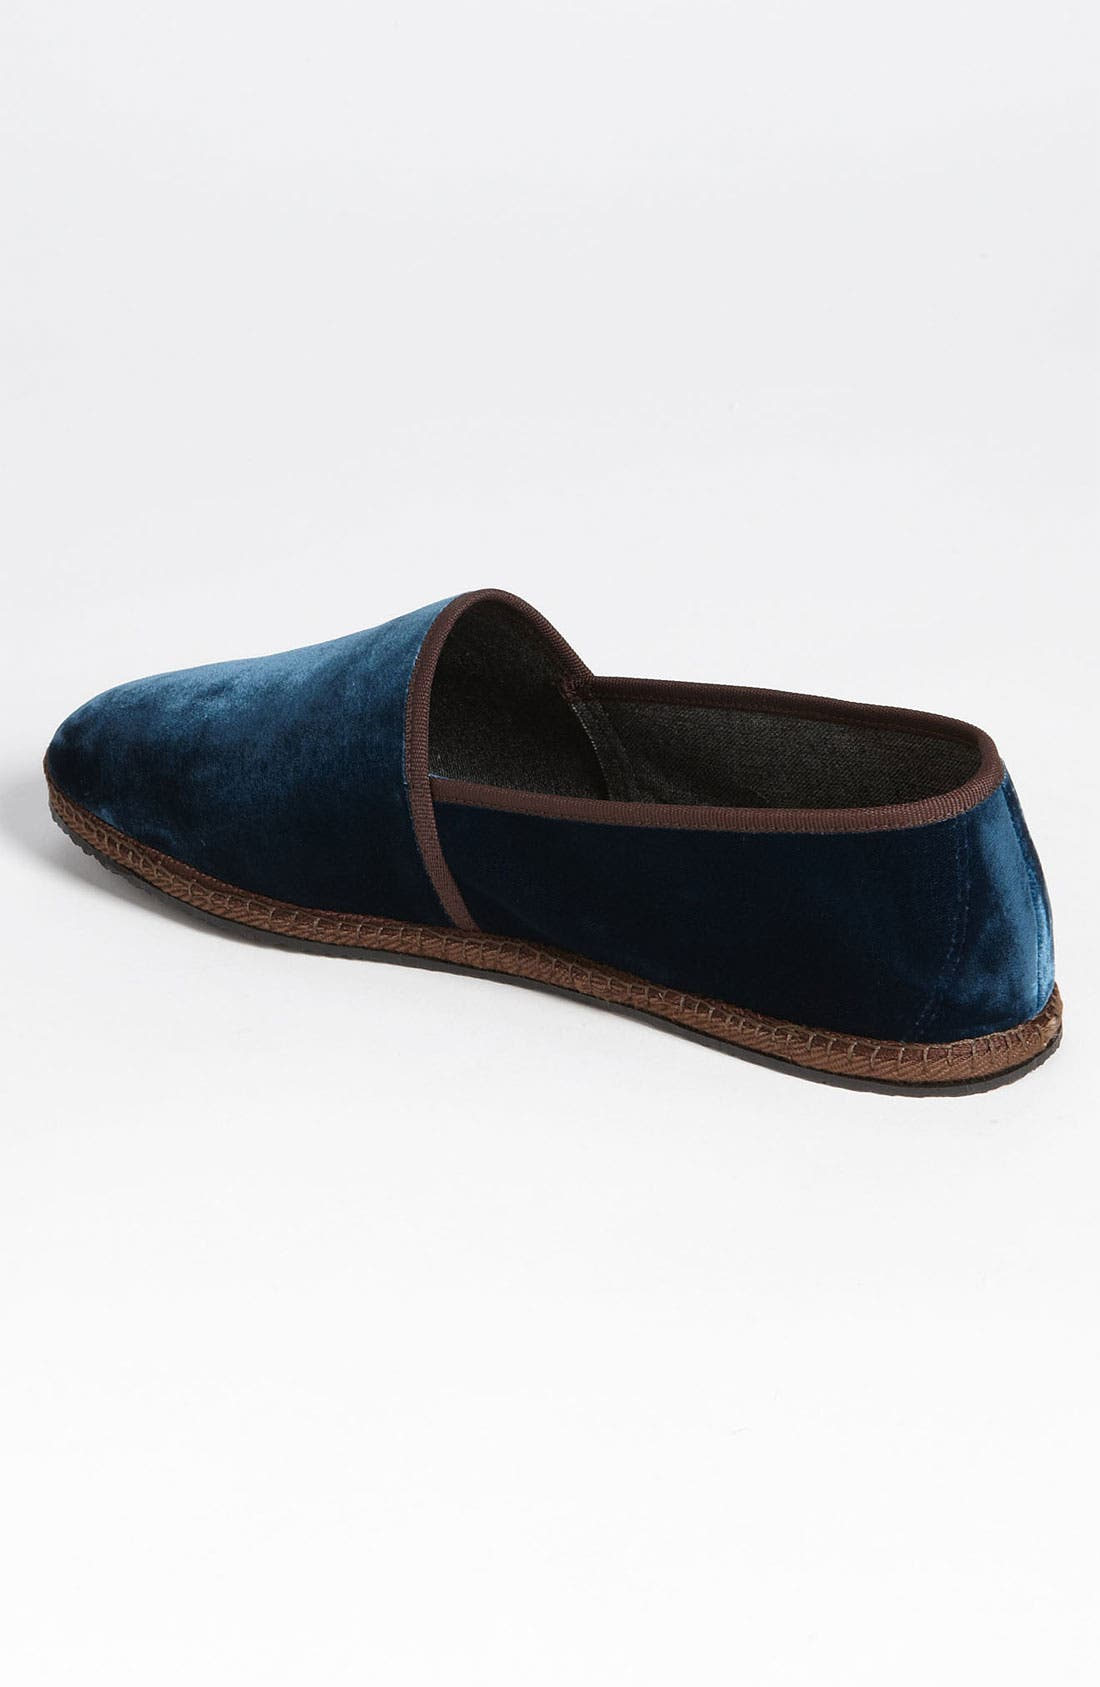 Alternate Image 2  - Salvatore Ferragamo 'Adone' Velvet Slip On